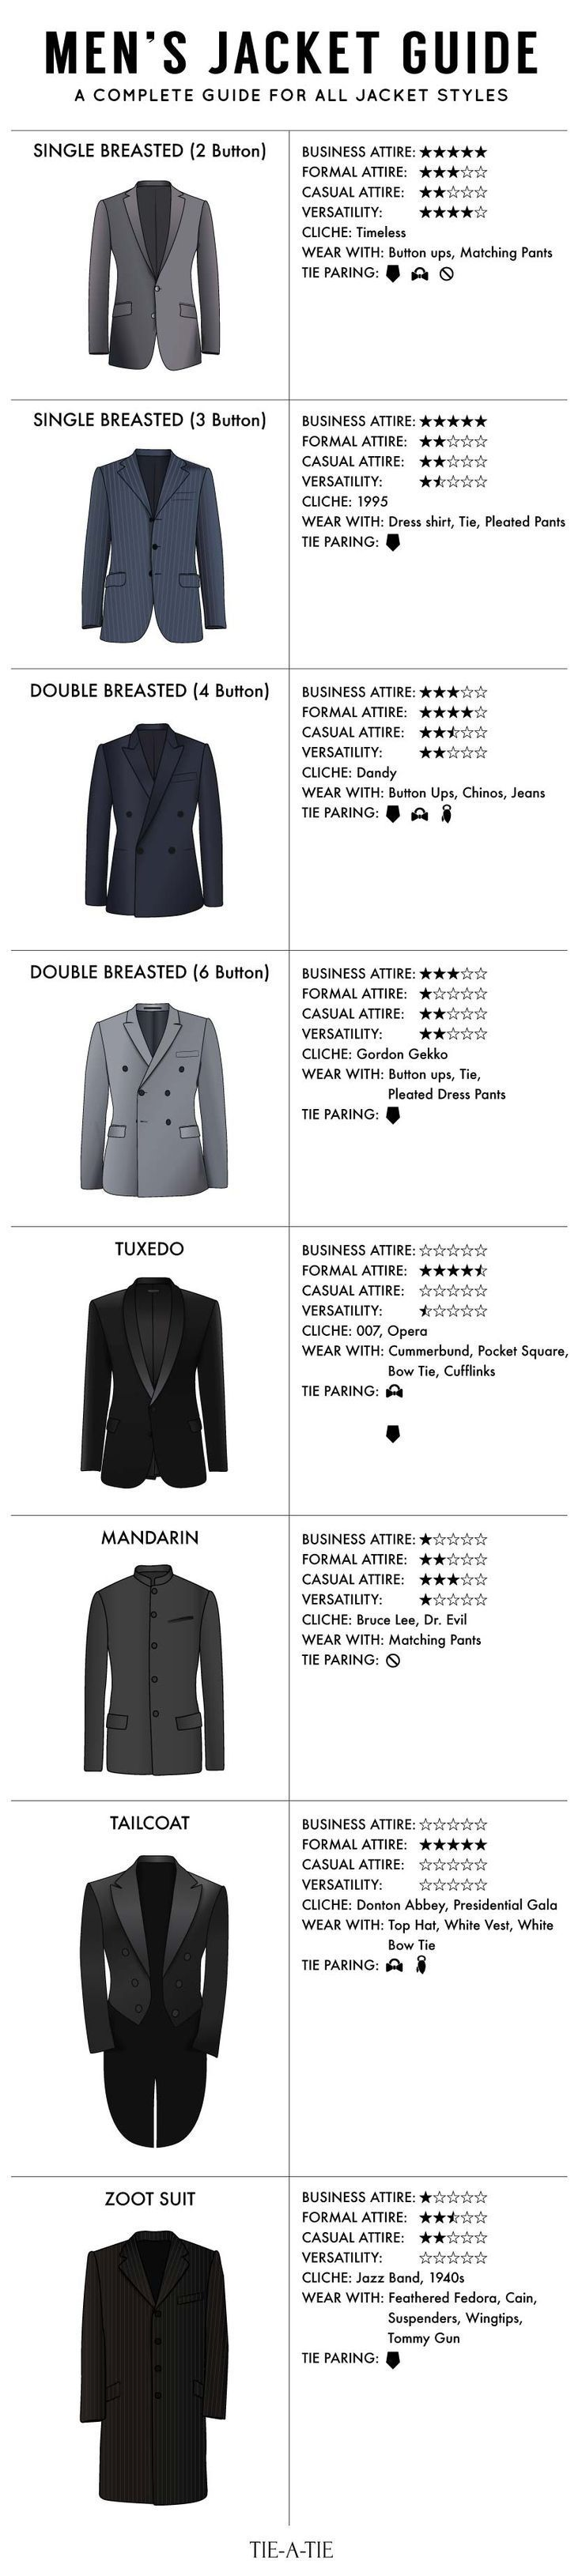 Guide to Mens Suit Jackets                                                                                                                                                                                 More